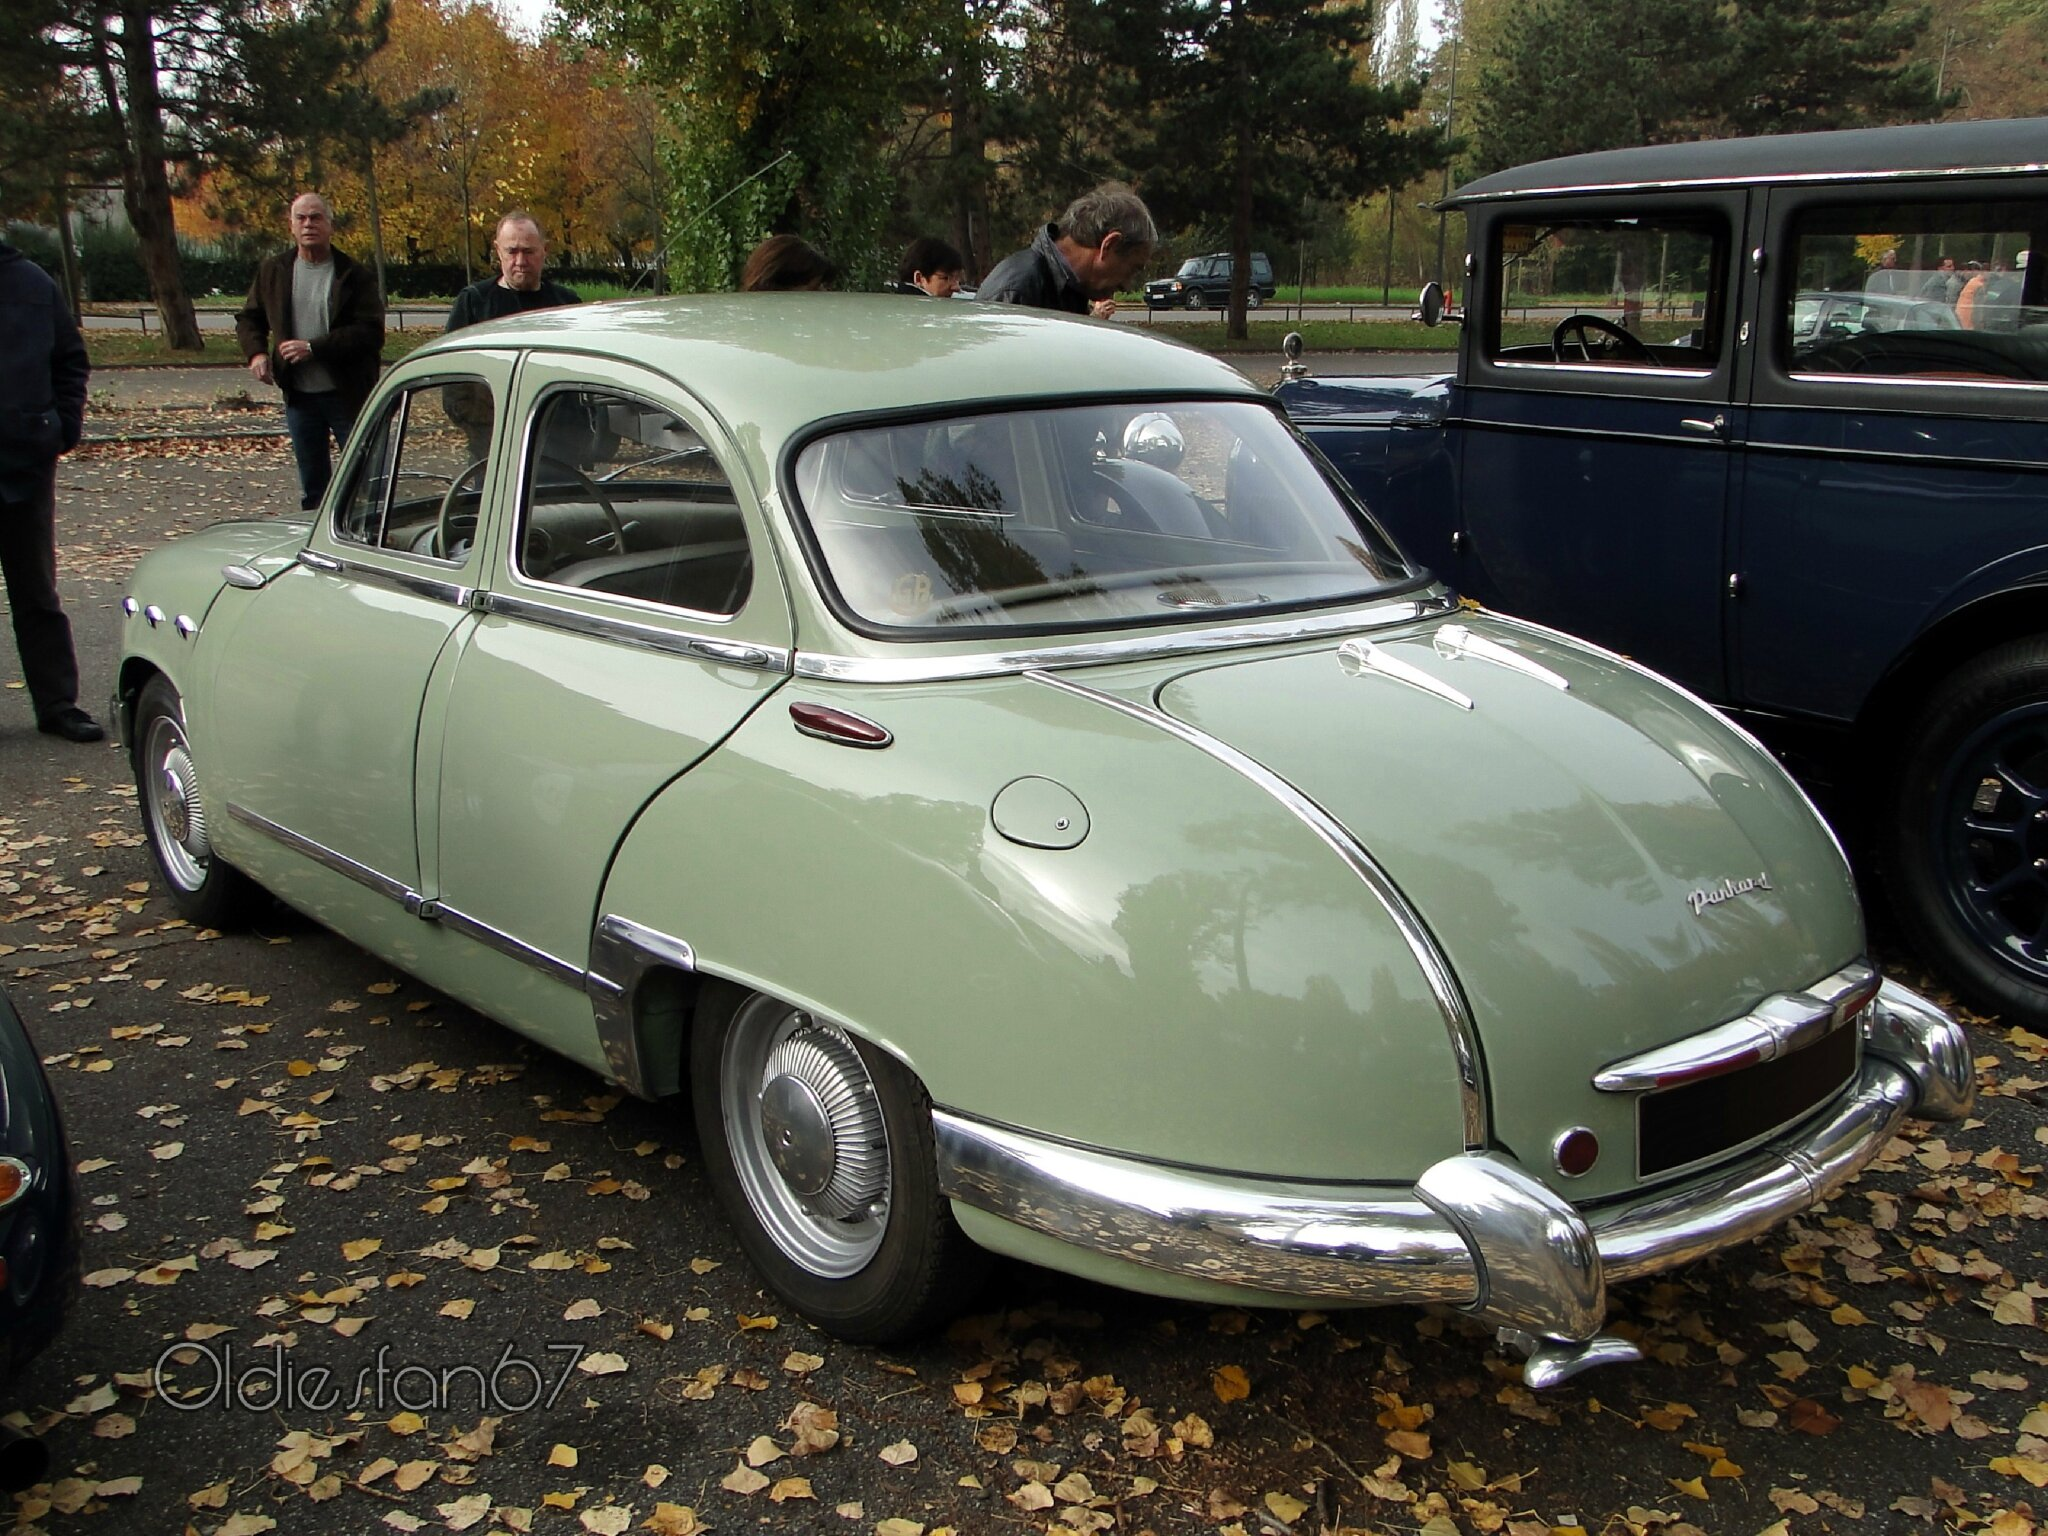 panhard tous les messages sur panhard page 2 oldiesfan67 mon blog auto. Black Bedroom Furniture Sets. Home Design Ideas